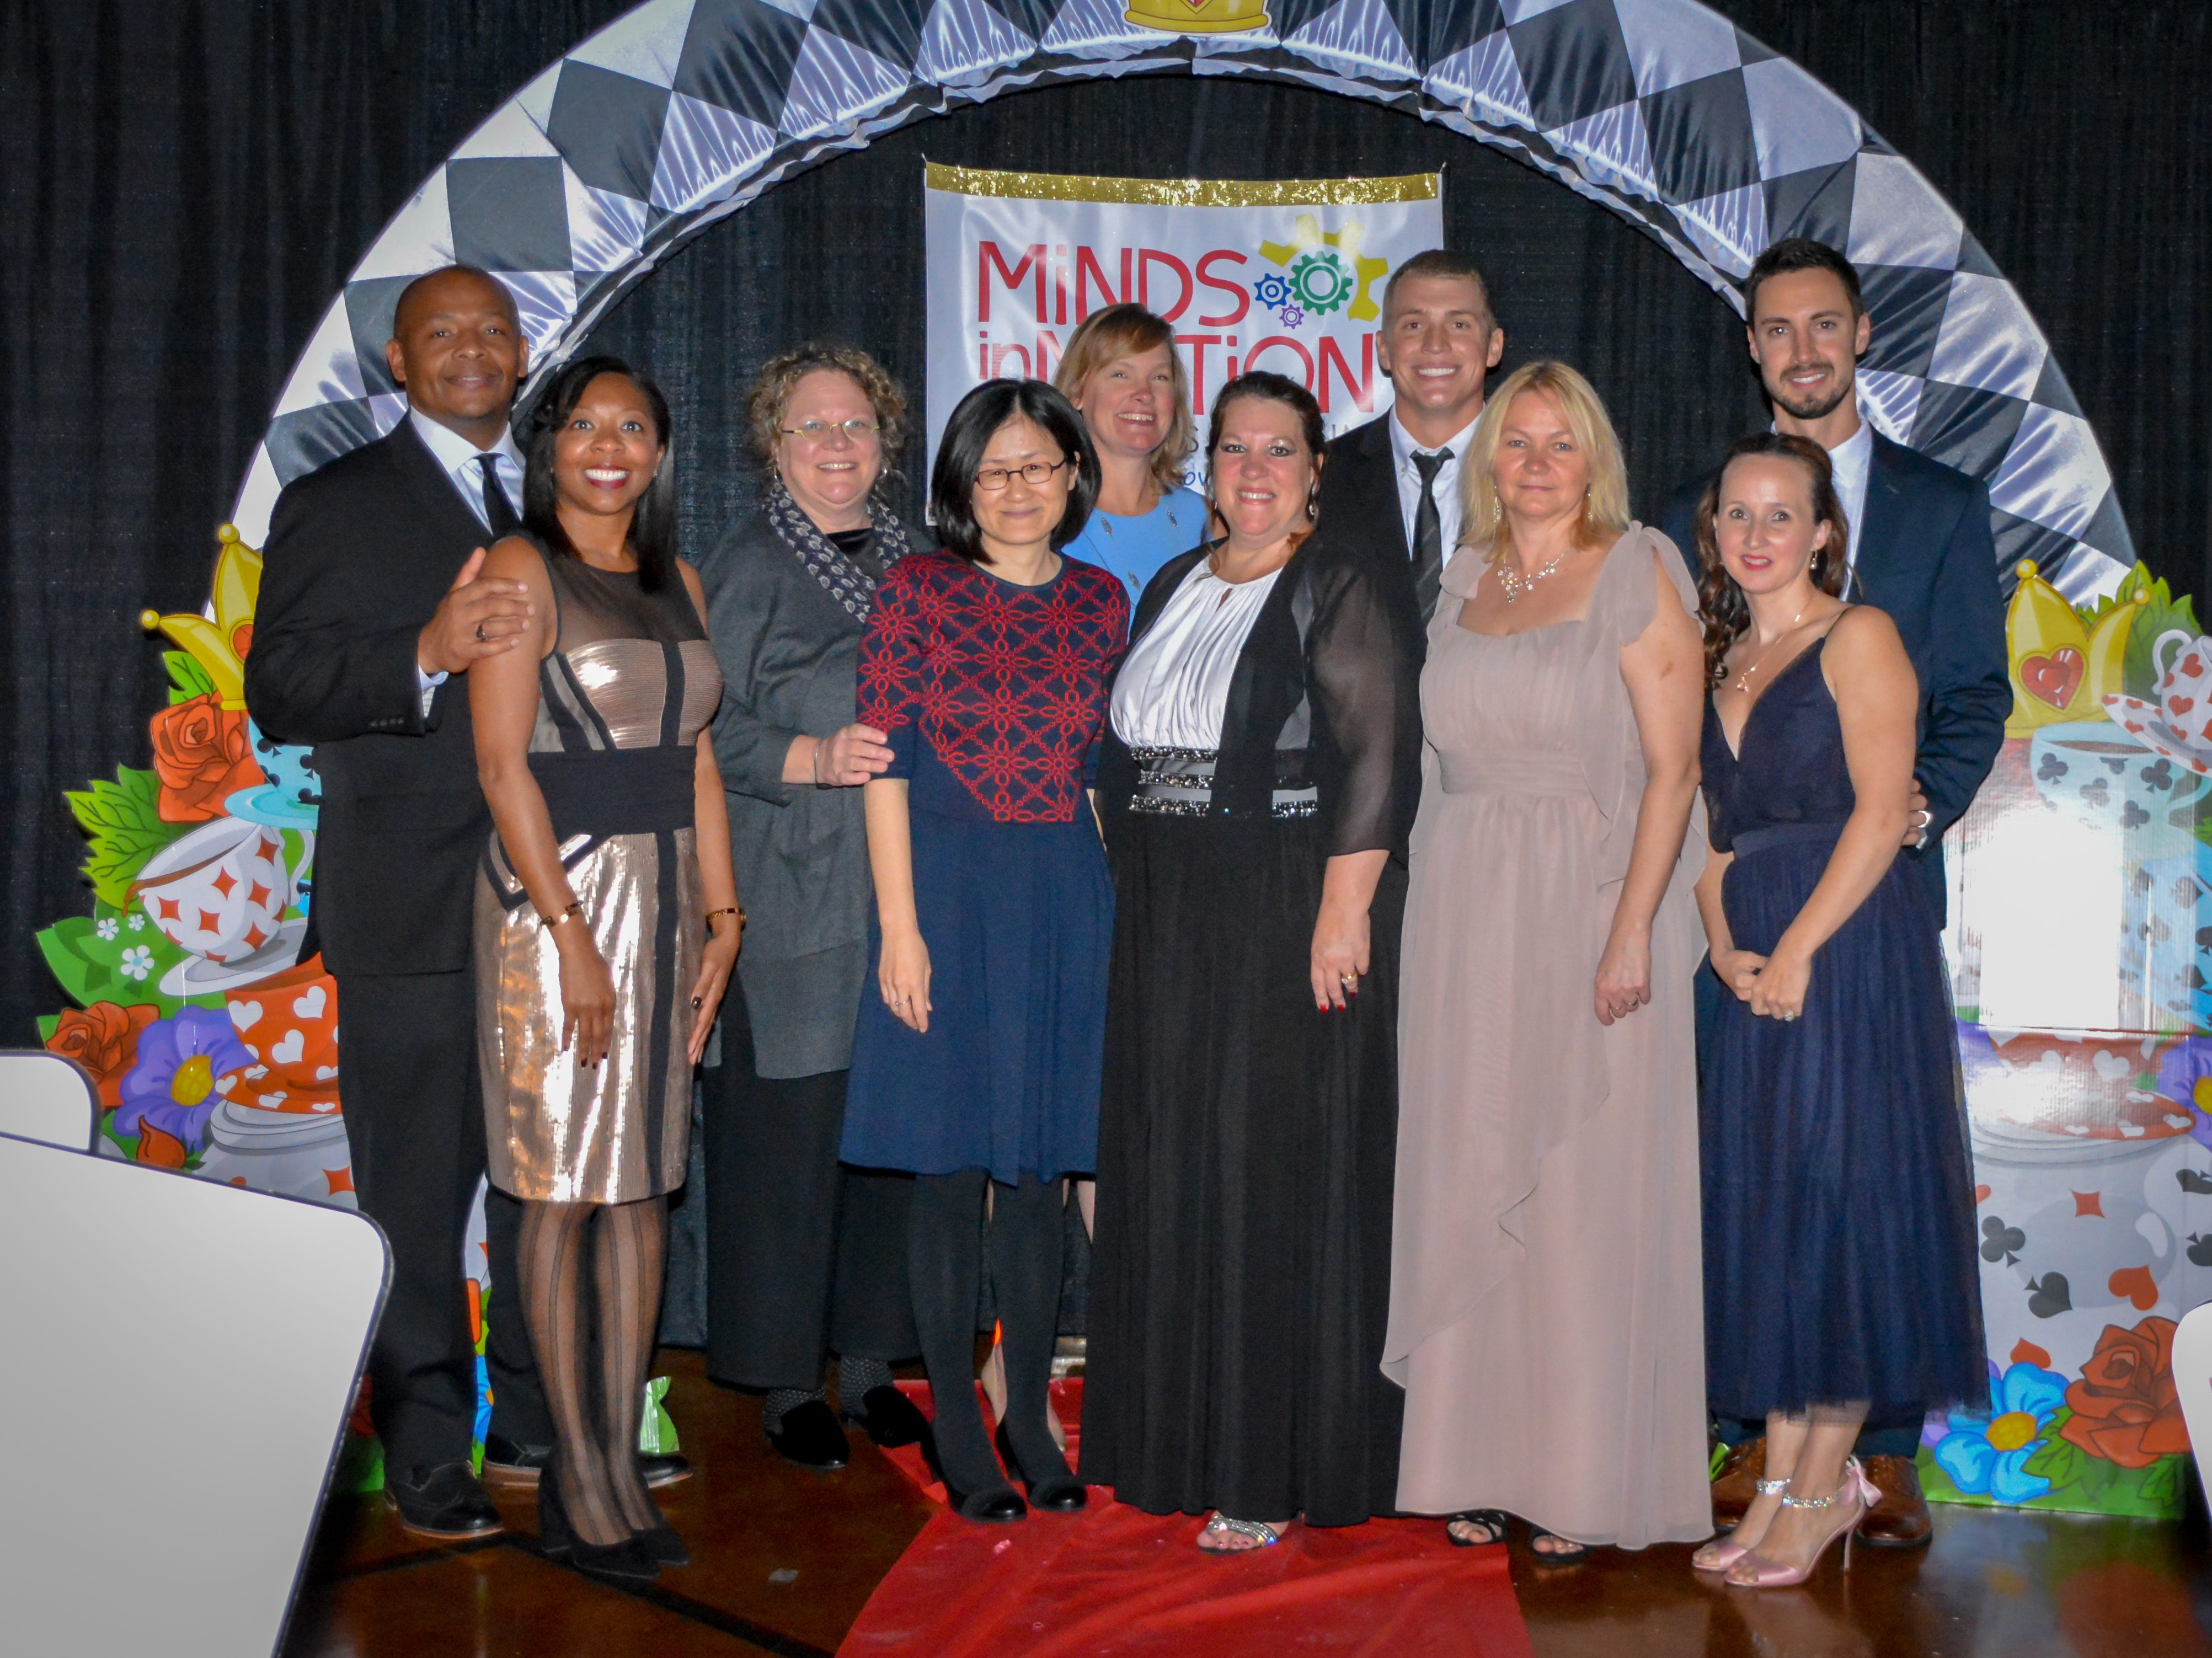 """Laurie Henry, Brandy Terrill, Claudia Burgess, Chin-Hsiu Chen, Vince Genareo, Kristen Maloney, Diallo Sessoms and Chalarra Sessoms, Eddie Daniels and Eva Bothazi take a group photo at the Minds in Motion Museum """"A Wonderland Adventure Gala"""" on Nov. 3, 2018 at the Wicomico Youth & Civic Center in Salisbury, Maryland."""